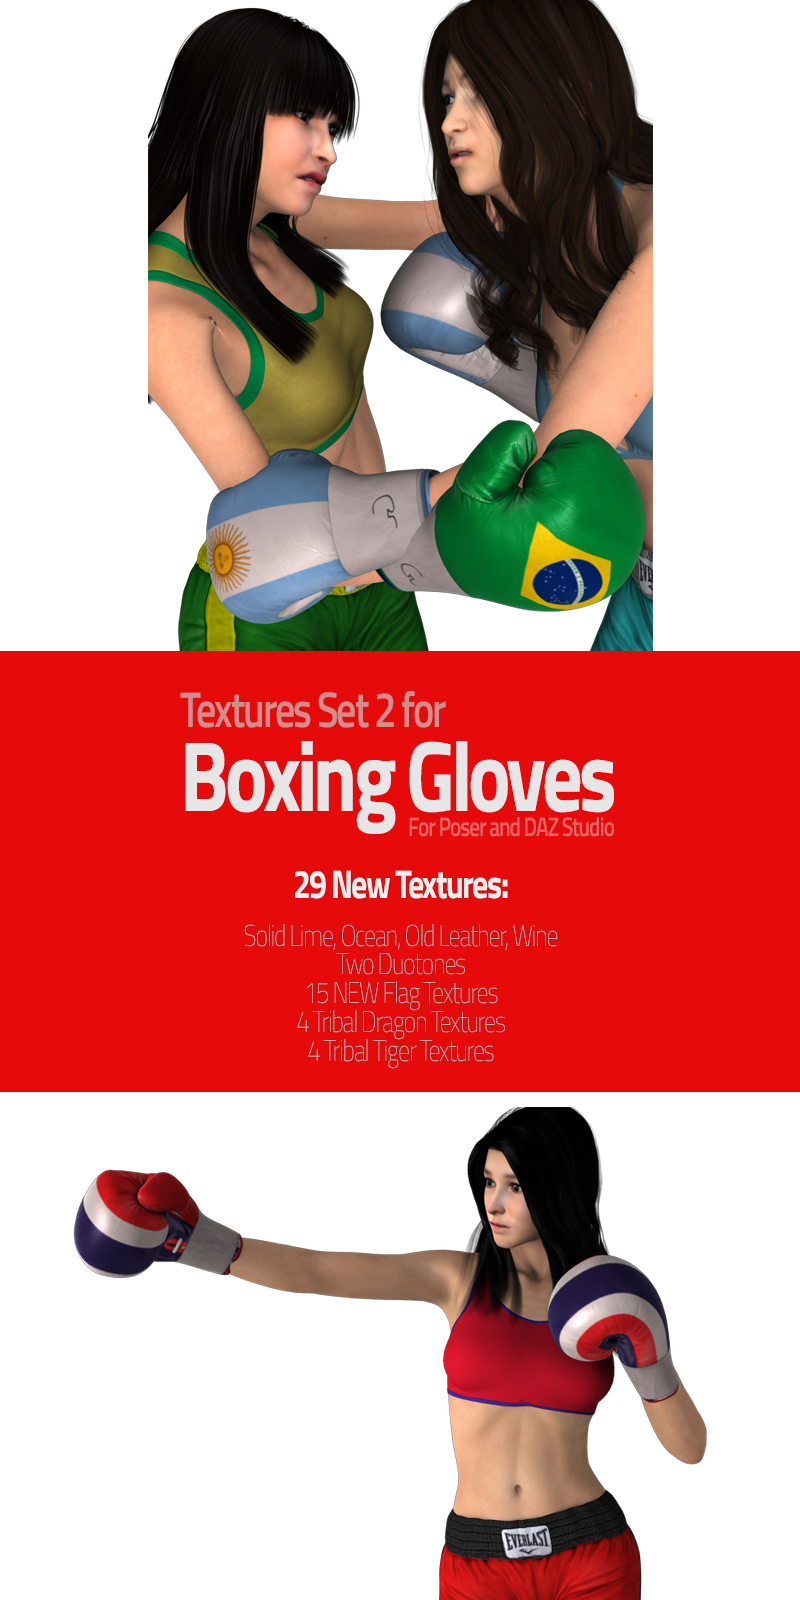 Textures Set 2 for Boxing Gloves